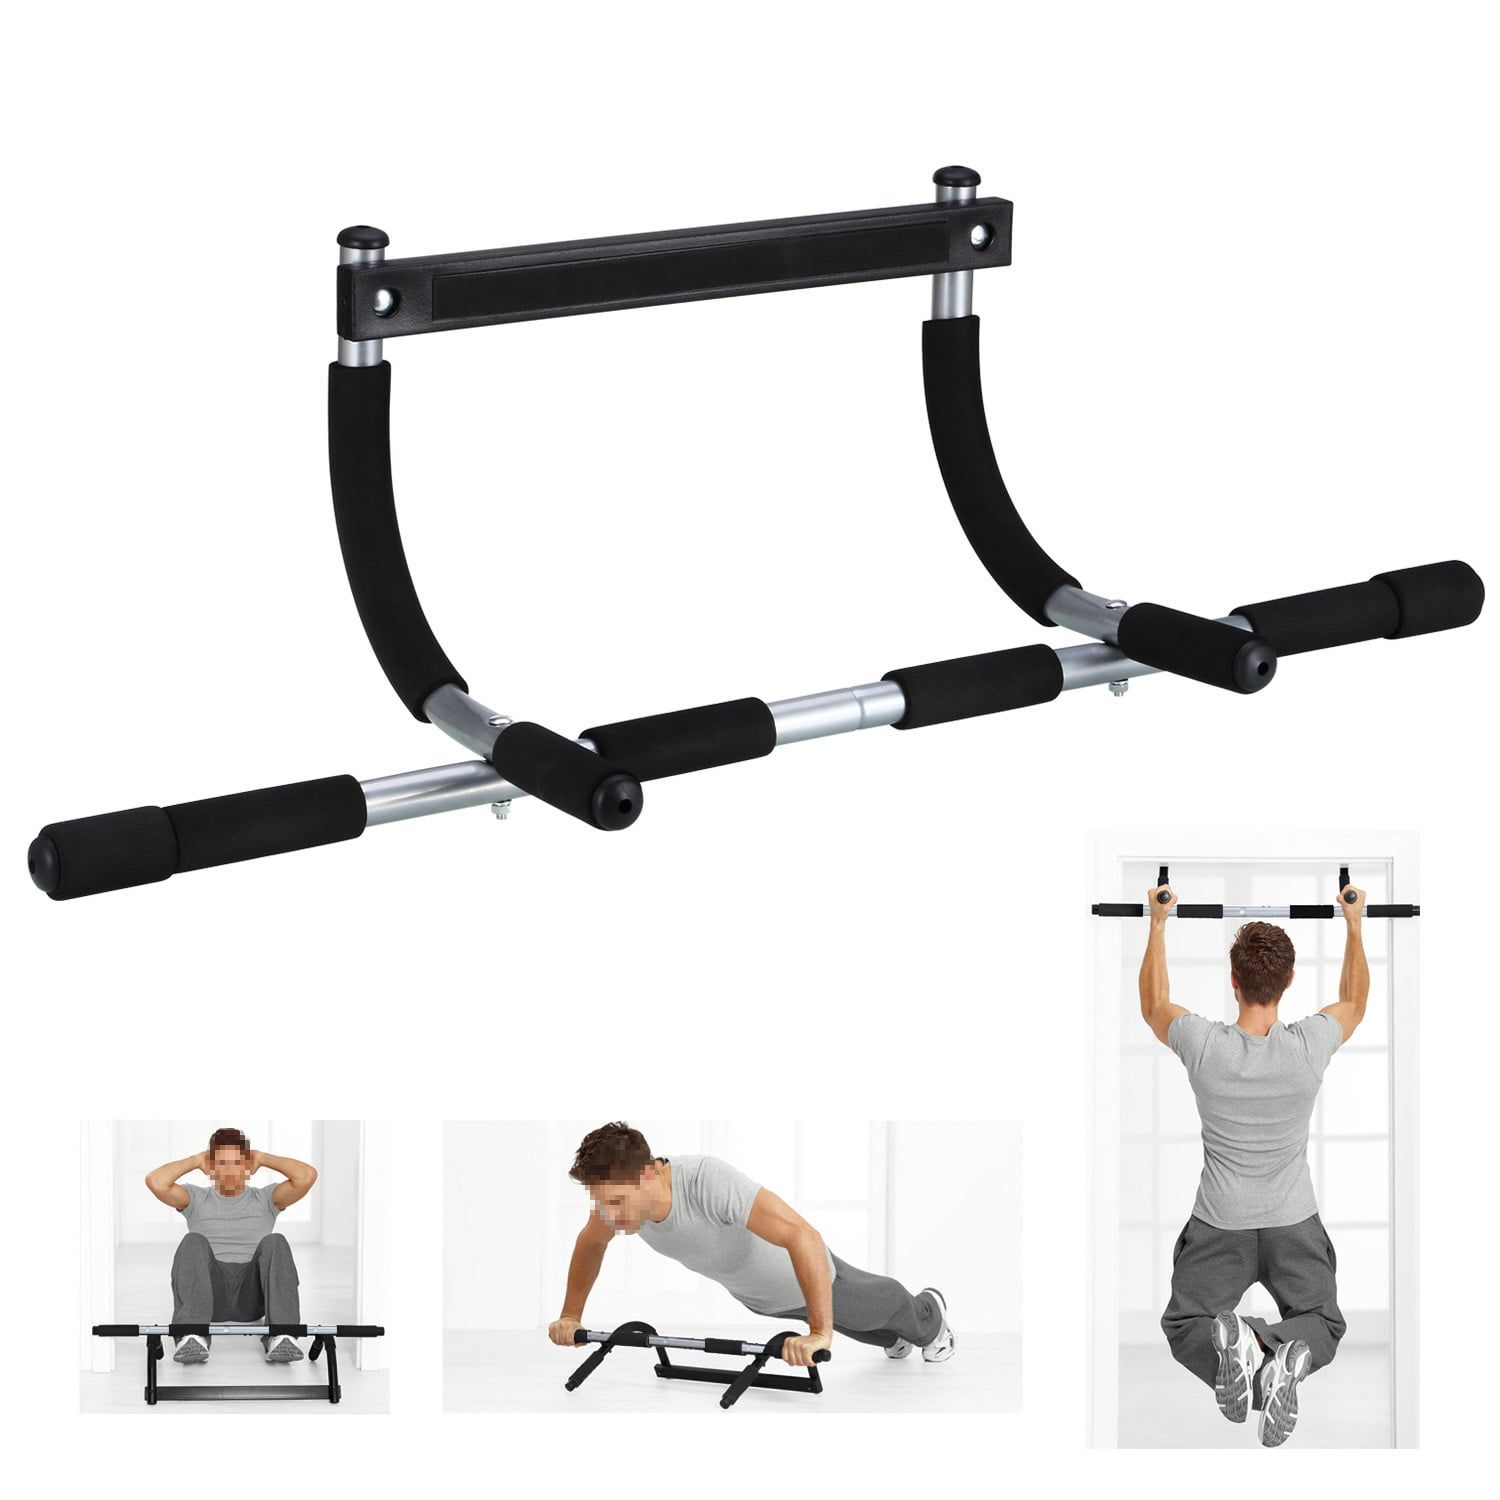 Mllieroo doorway pull up bar multi function chin up home gym